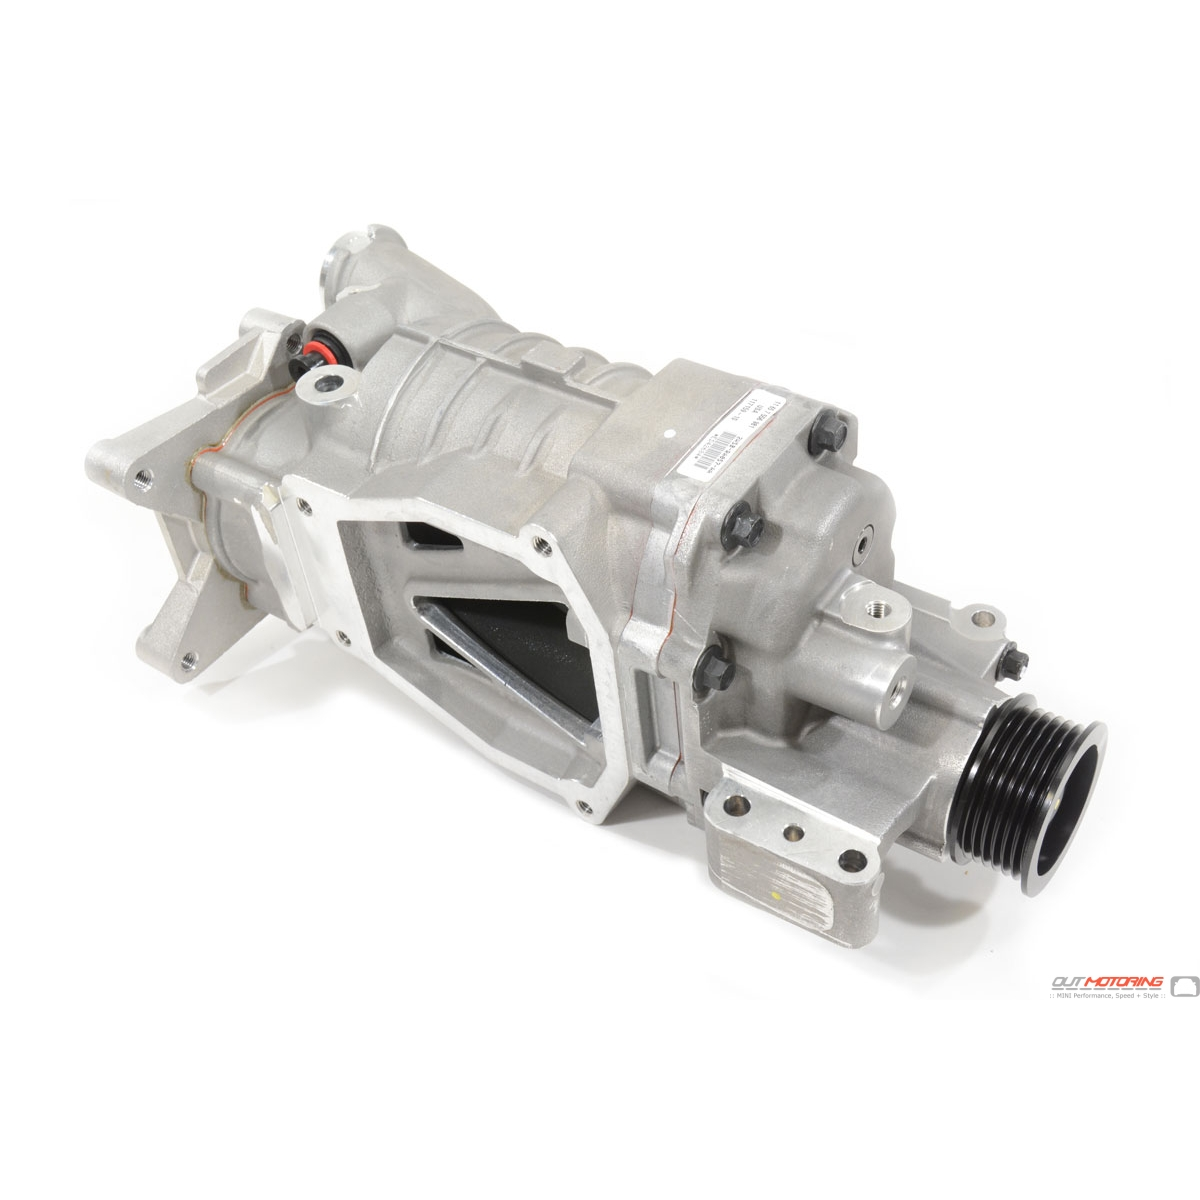 Mini Cooper S Performance Jcw Supercharger 11657556981